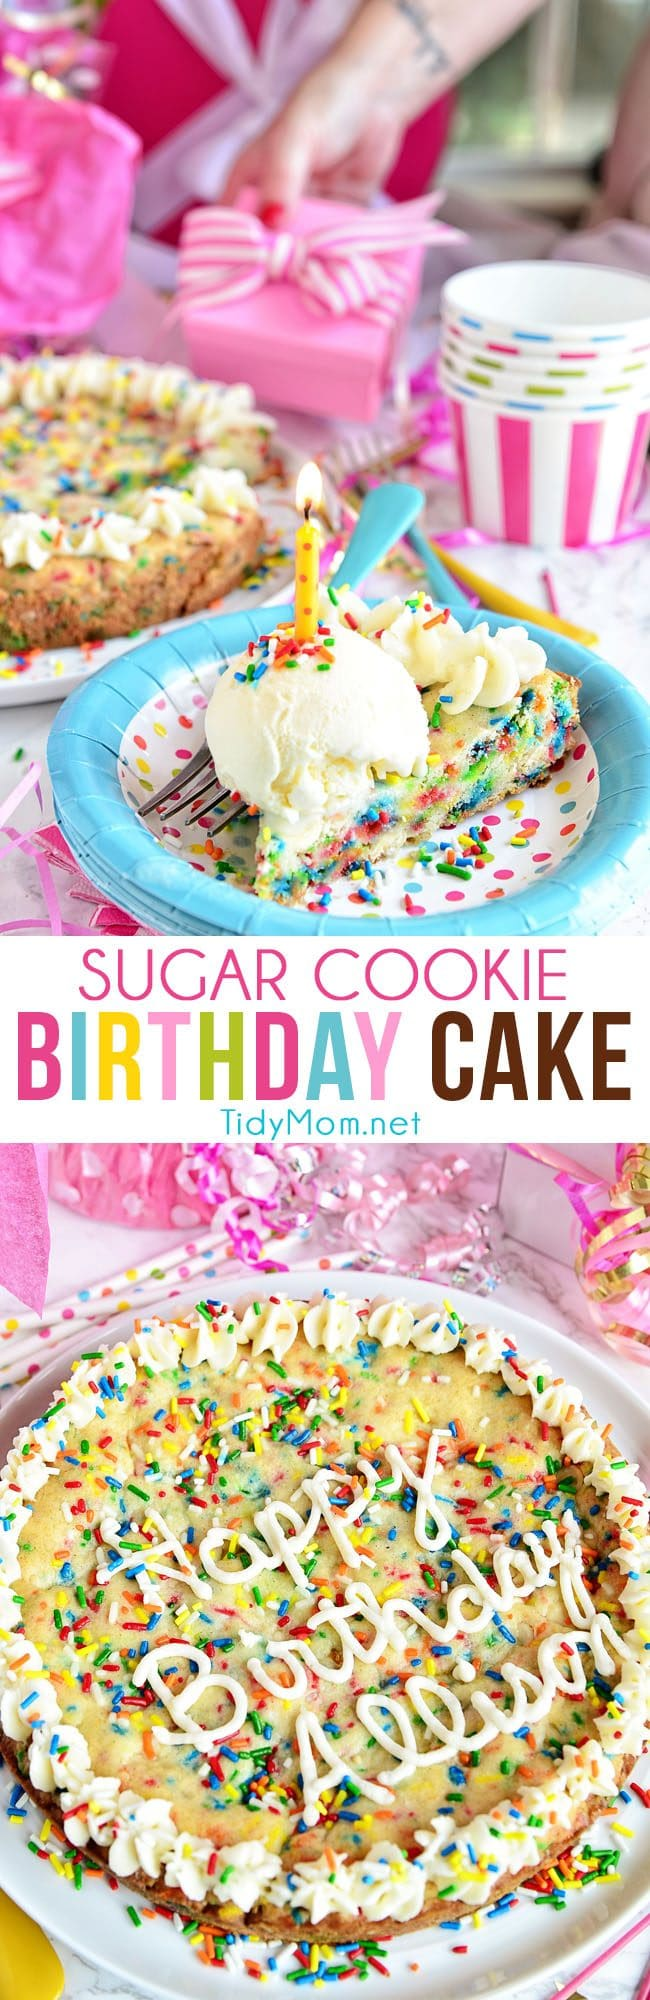 BIRTHDAY SUGAR COOKIE CAKE full of sprinkles photo collage